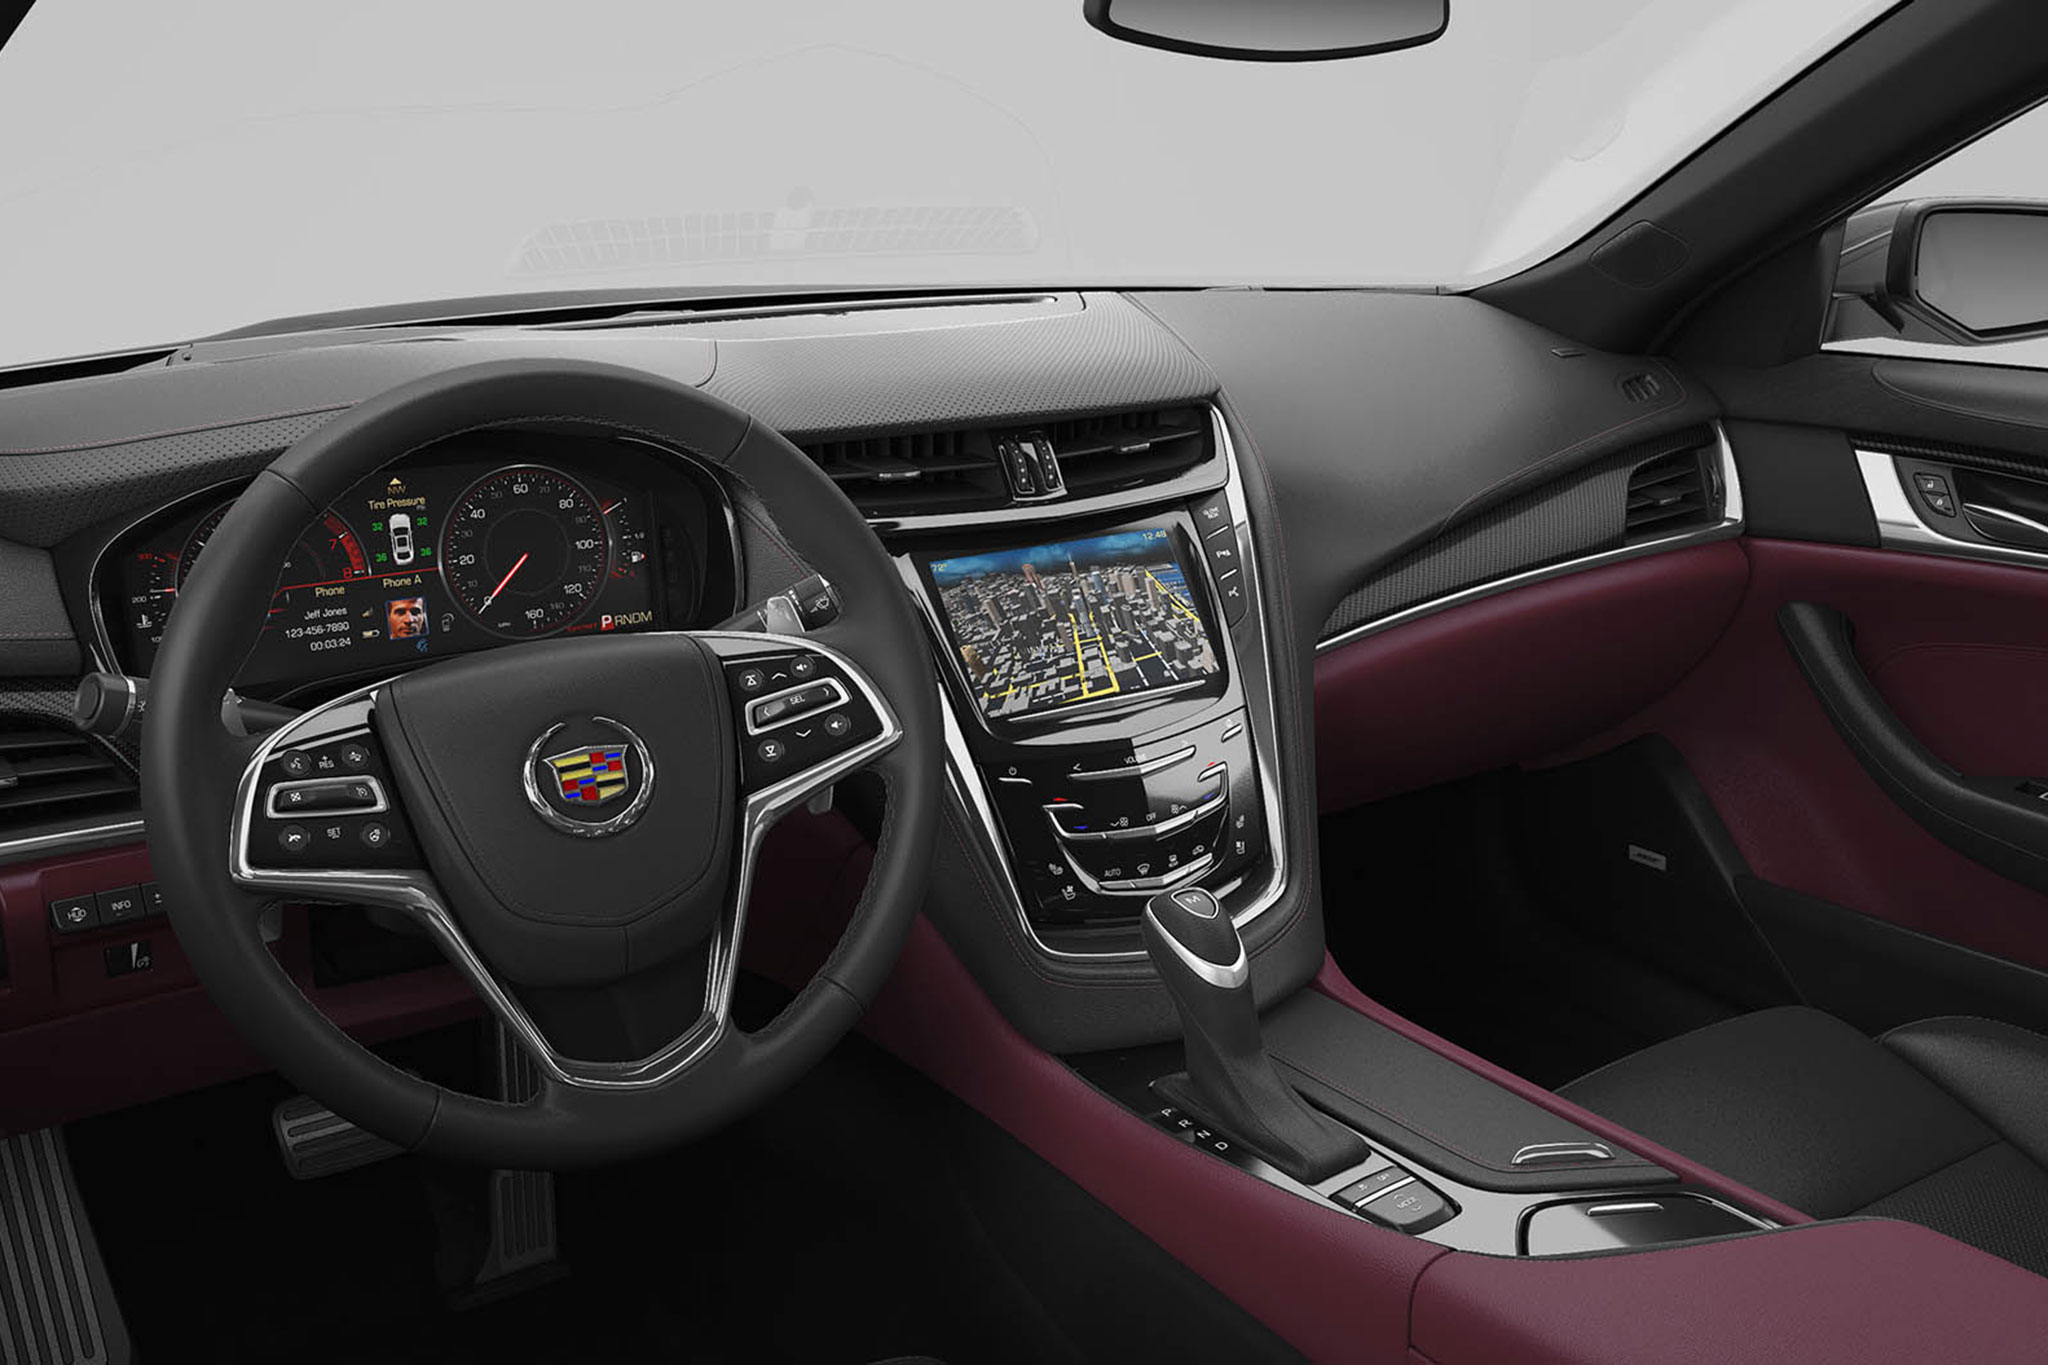 First Look 2014 Cadillac Cts Automobile Magazine. 2014 Cadillac Cts 17222. Cadillac. 2014 Cadillac Cts Schematic At Scoala.co